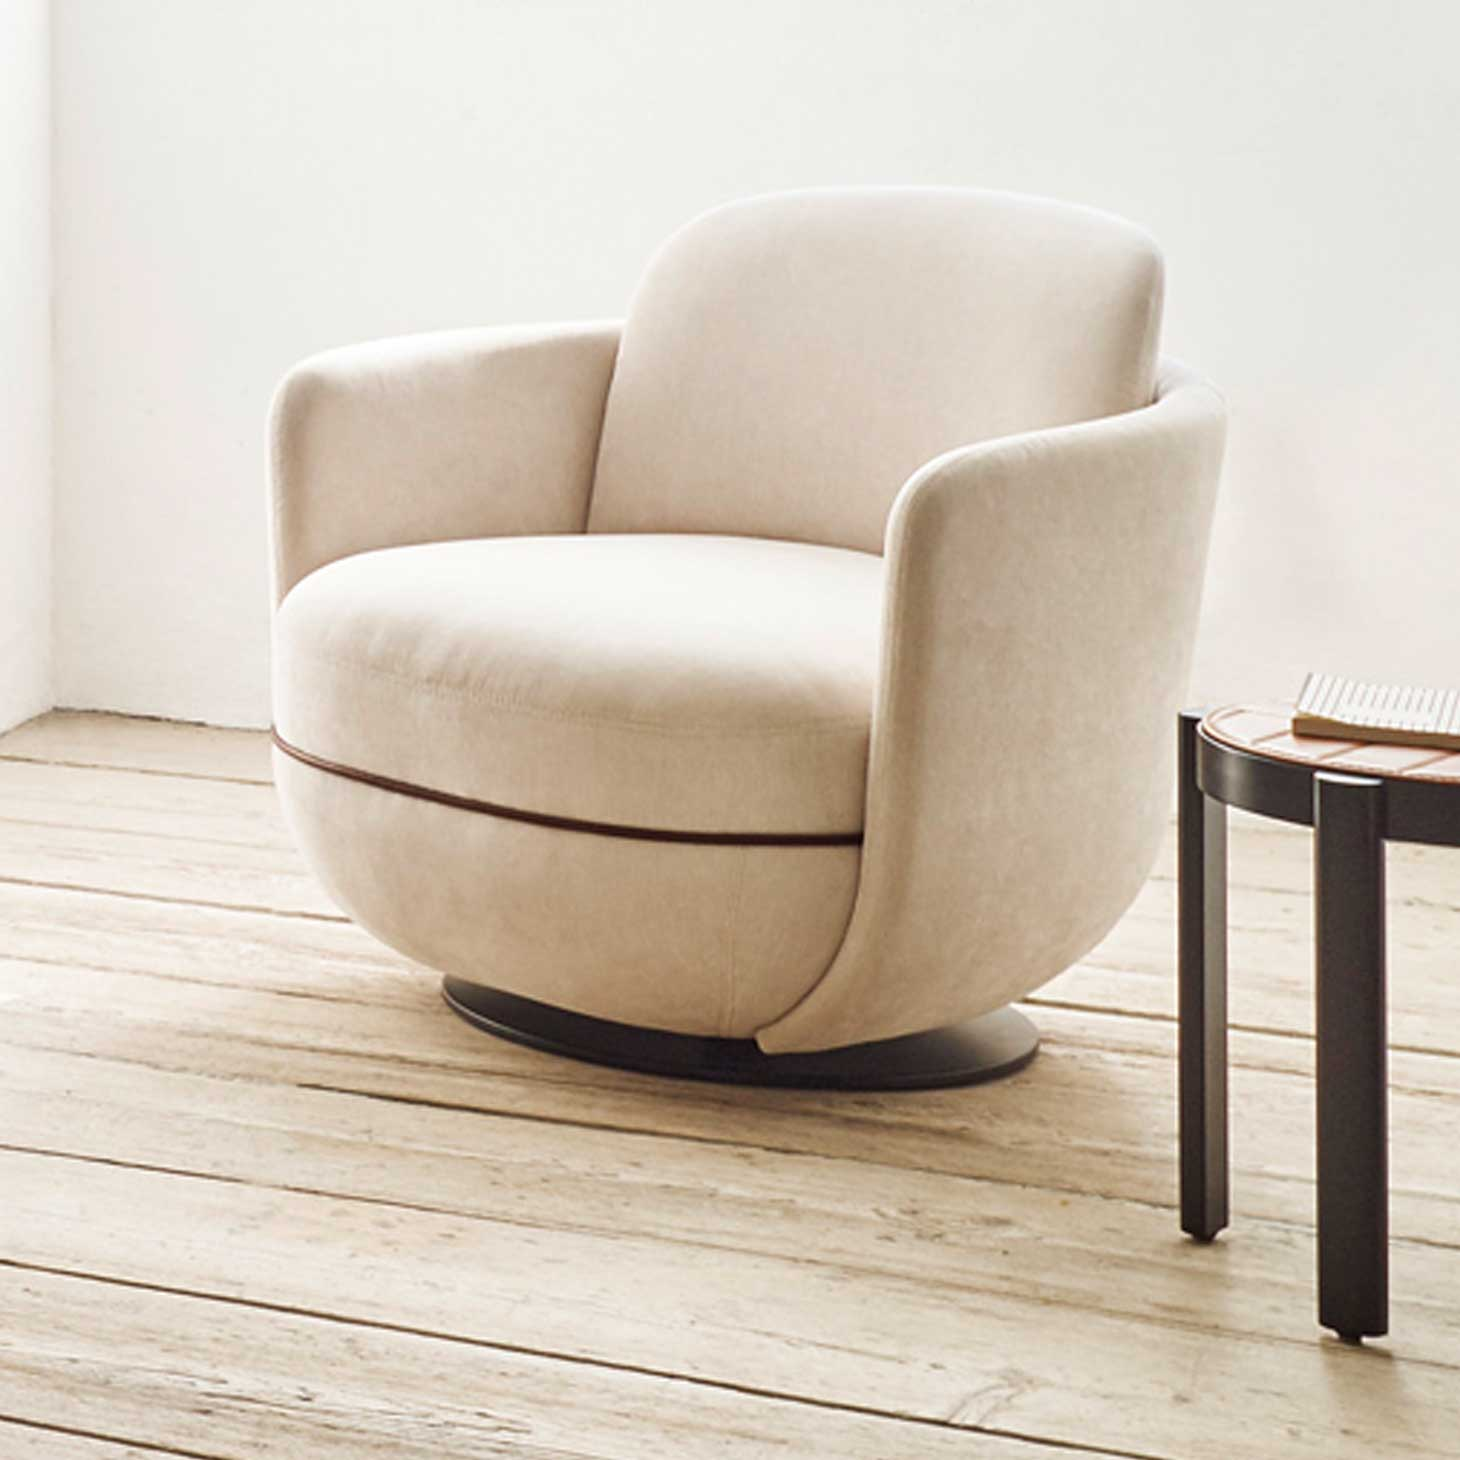 Miles lounge chair